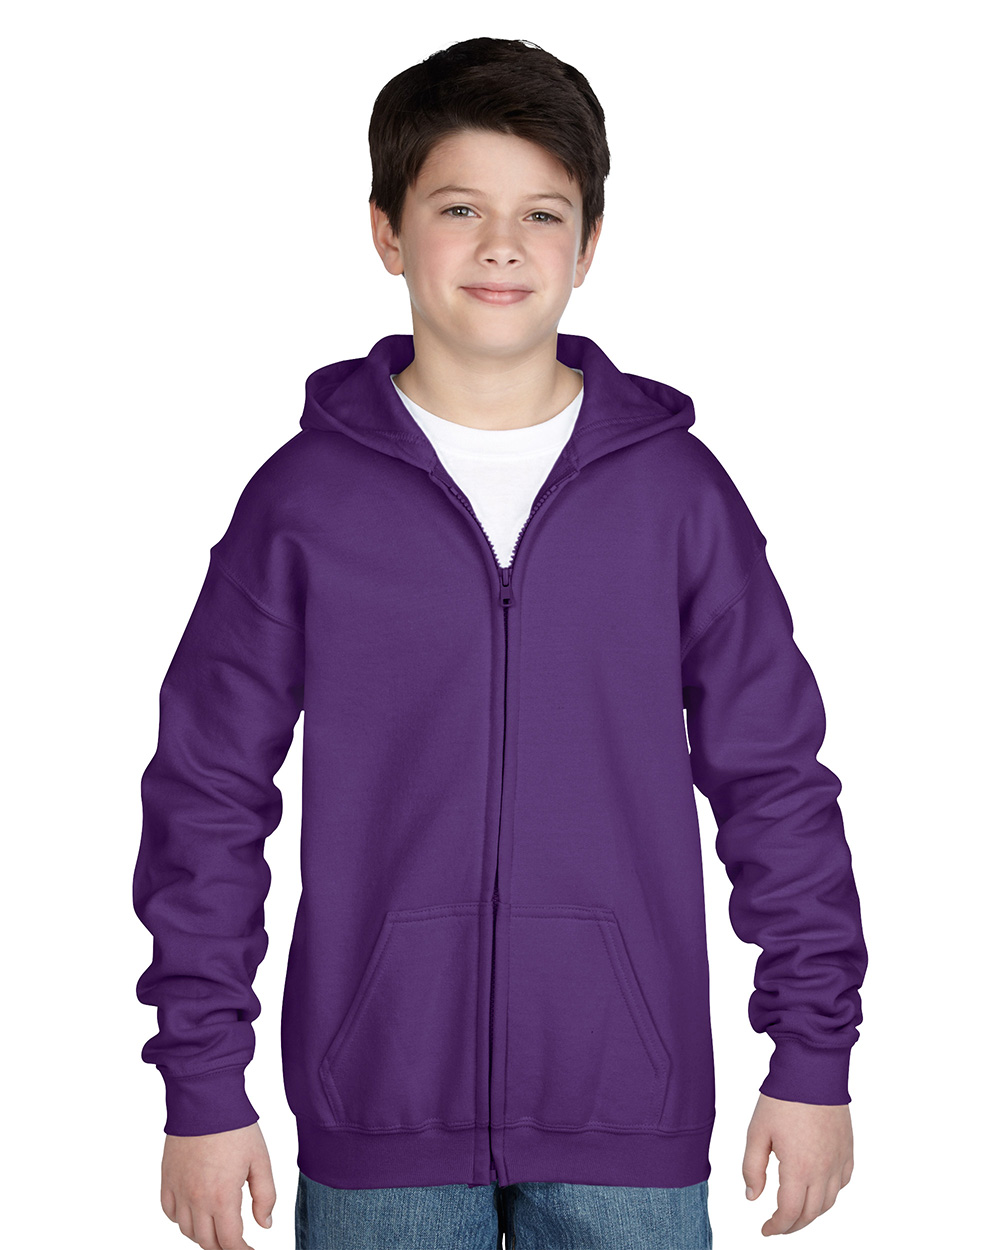 Gildan 18600B     Classic Fit Youth Full Zip Sweatshir  t    50% Cotton / 50% Polyester Fleece